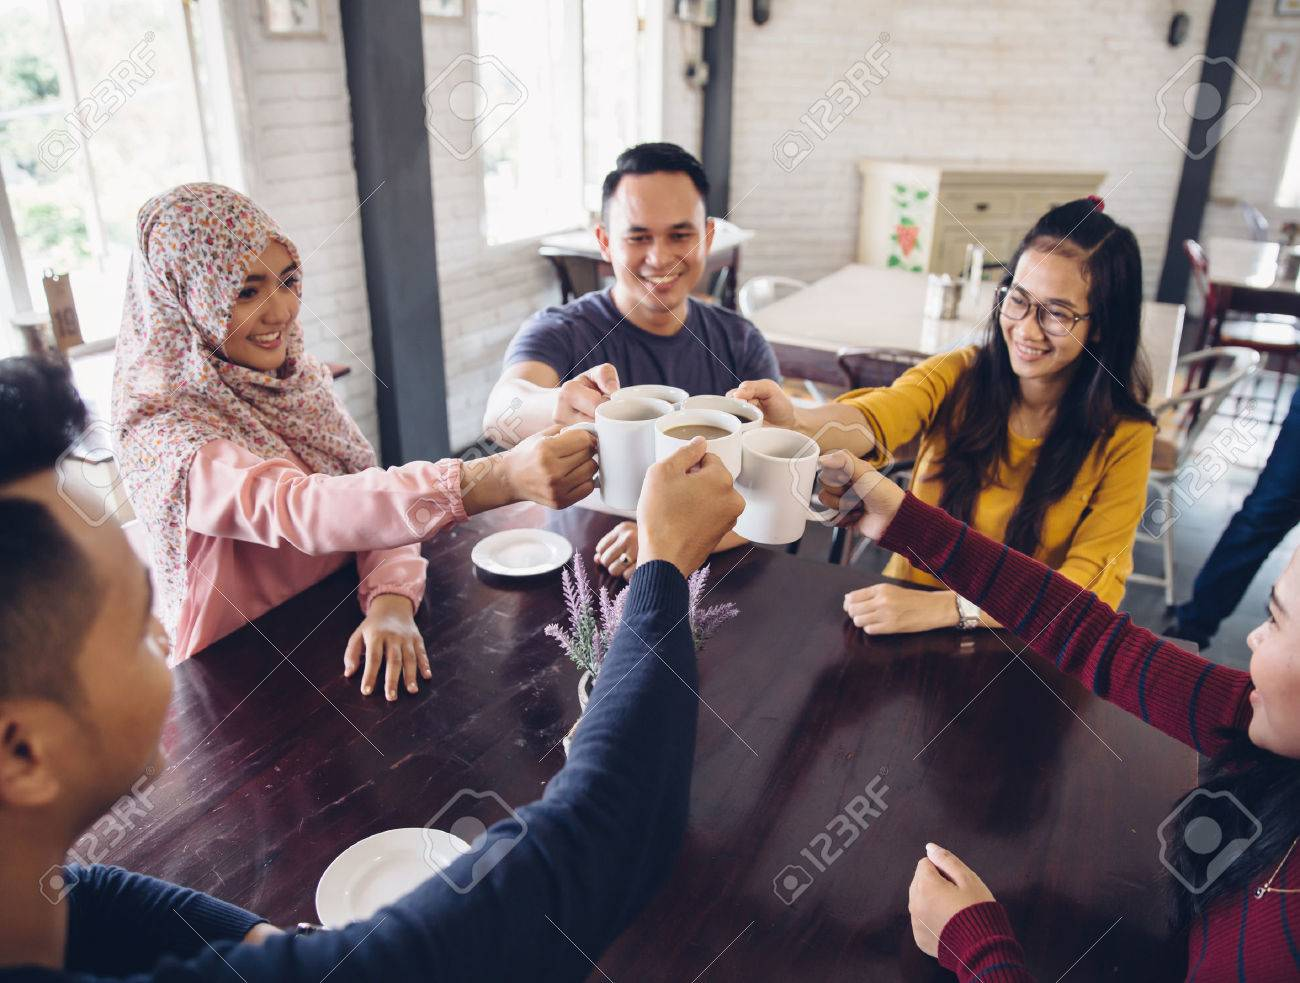 happy Diverse Friends Cheering With Coffee at cafeteria - 54703686